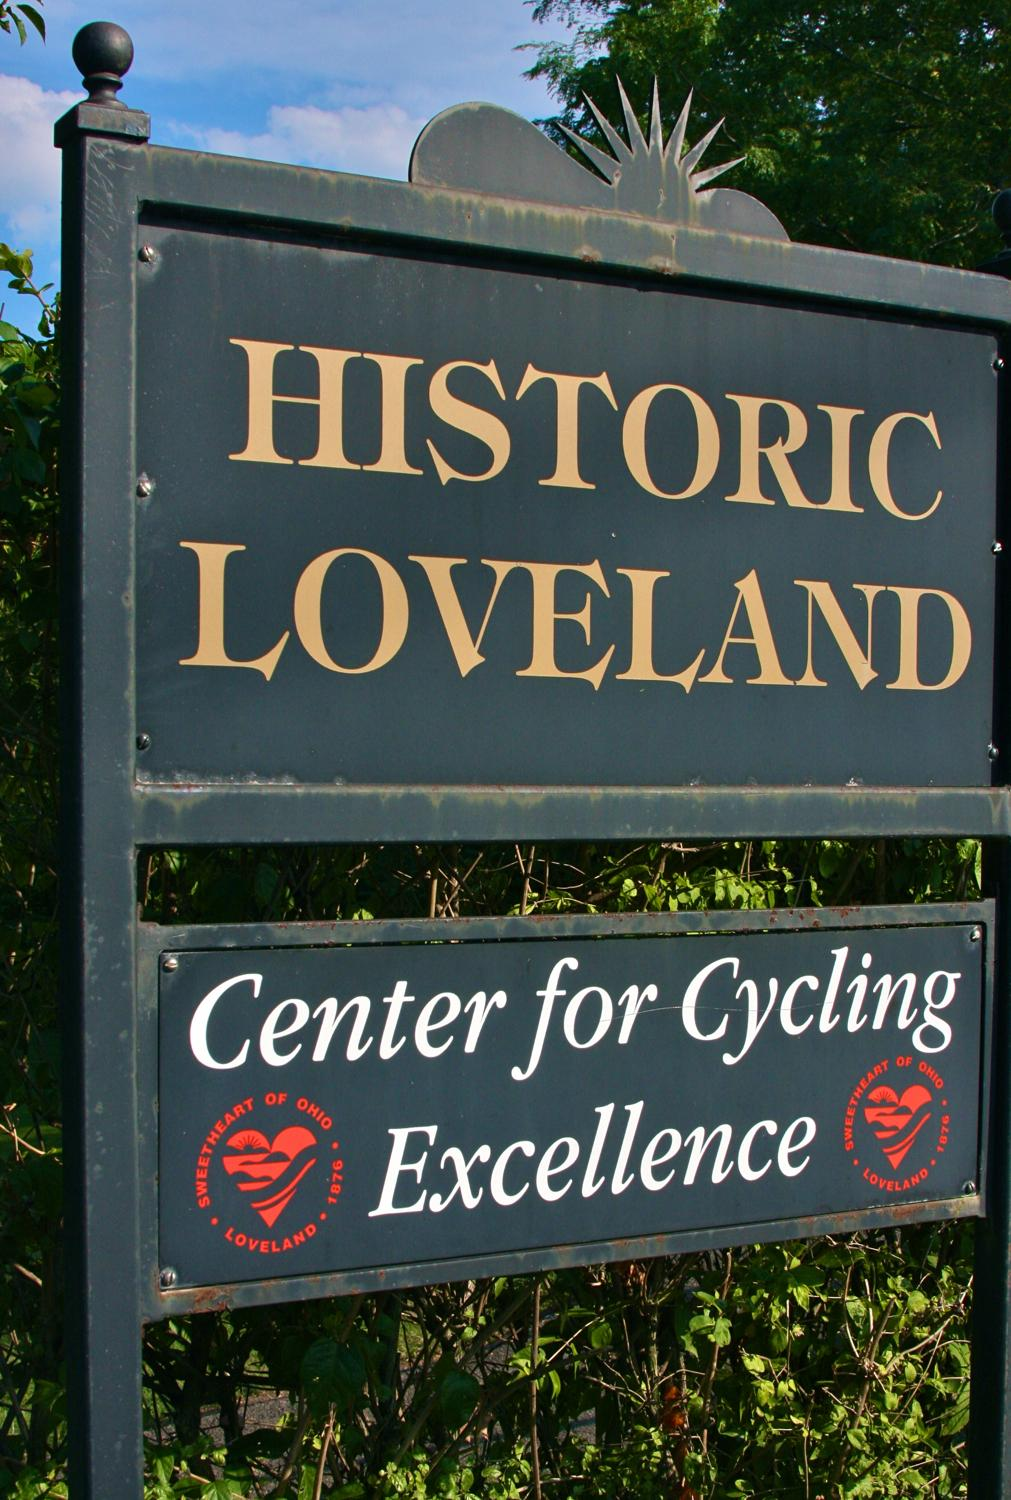 Gather your friends and family for a blissful day of biking, running, picnicking, and kayaking on the 70-mile Loveland Bike Trail this summer. It's located at 206 Railroad Ave, Loveland, OH 45140. / Image: Molly Paz